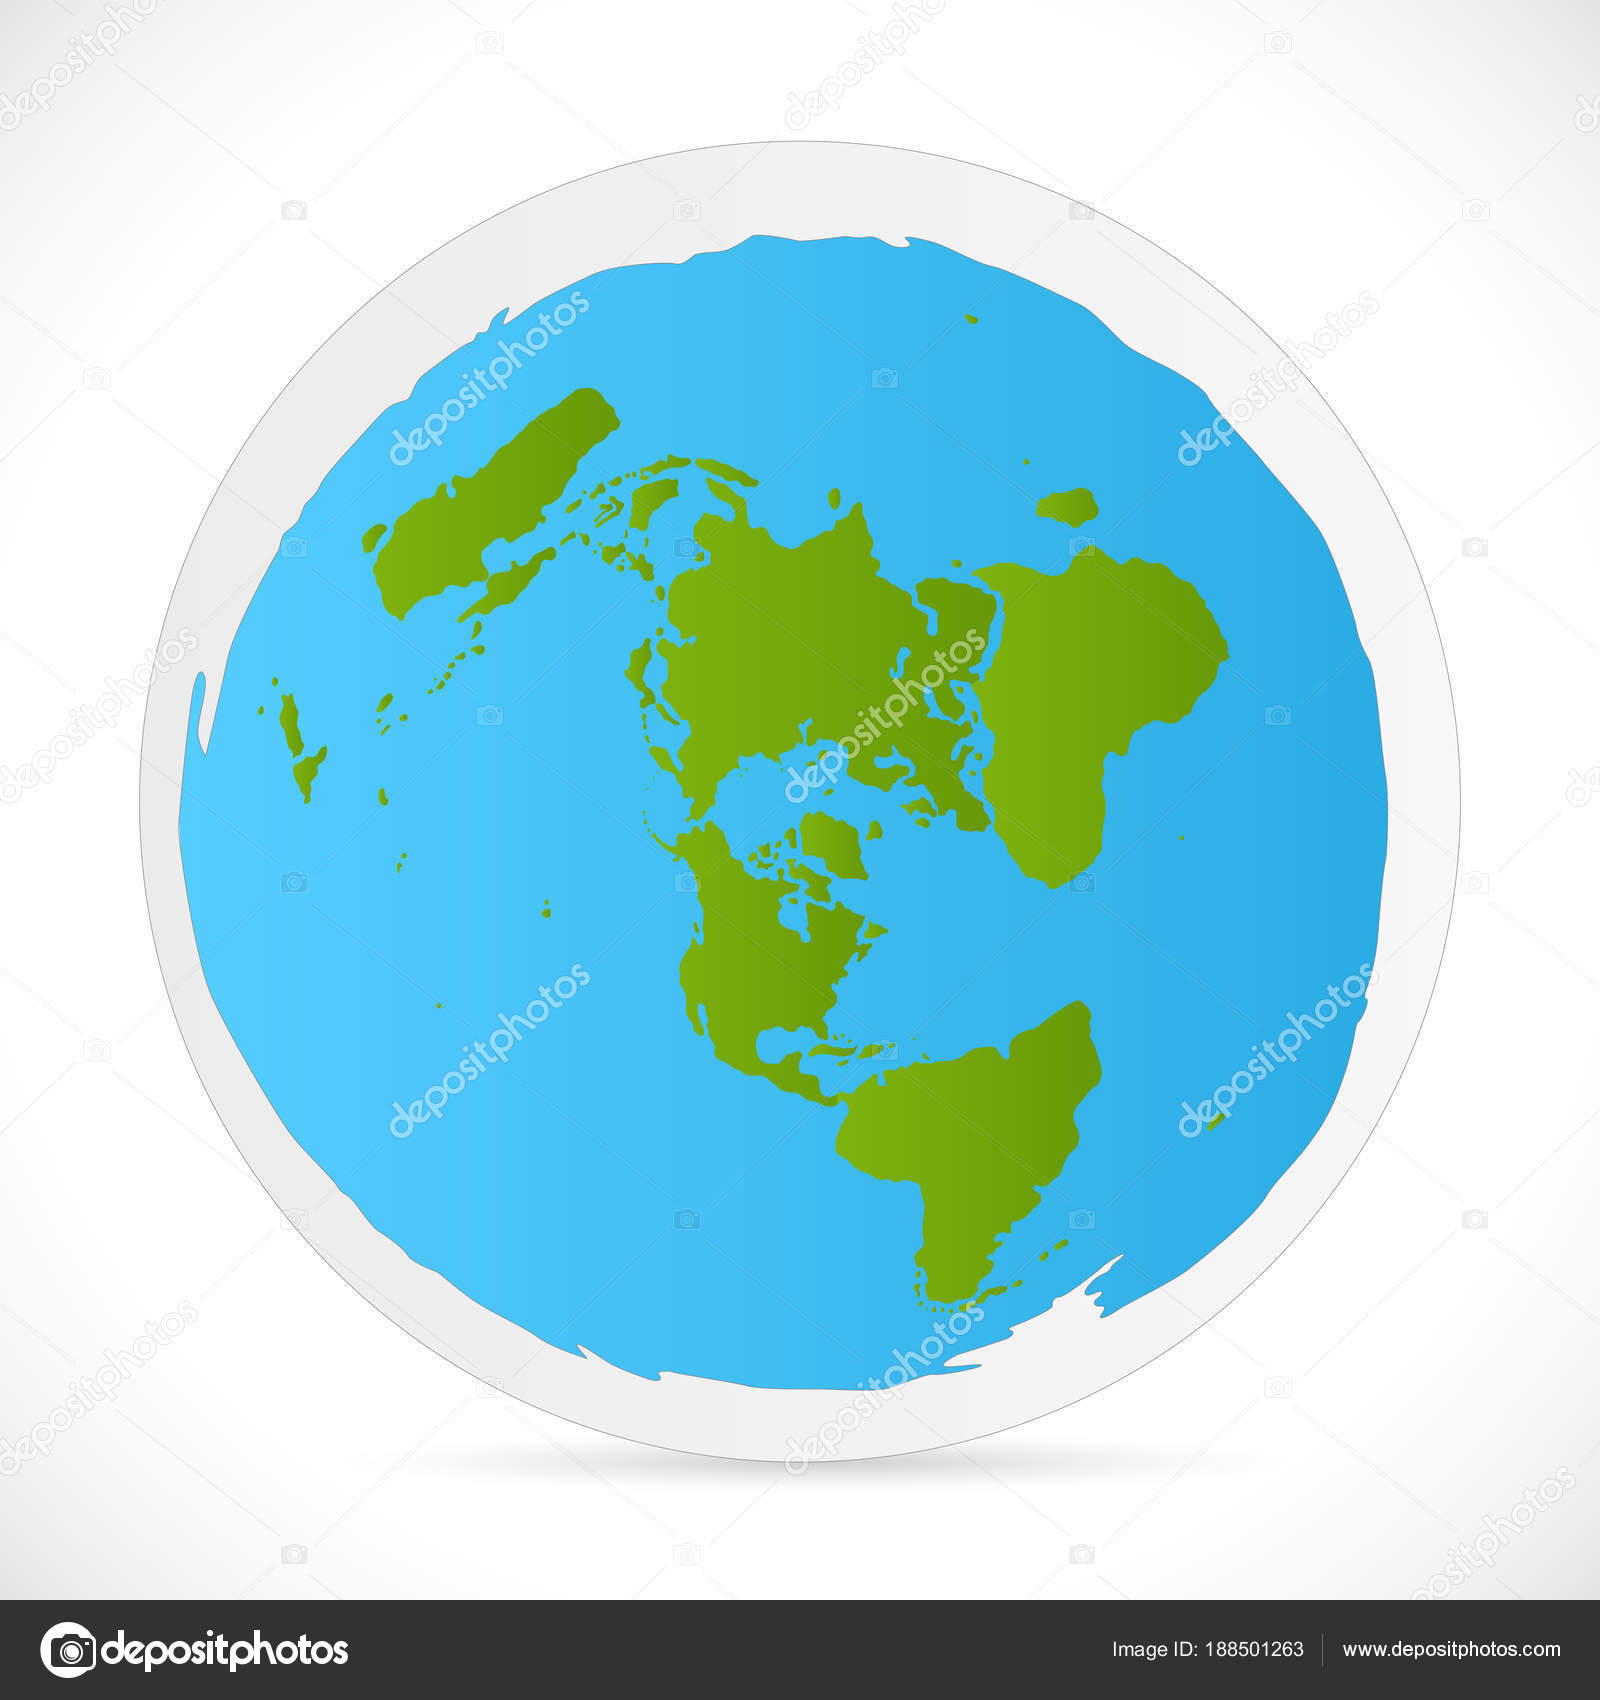 Flat earth illustration stock vector nmarques74 188501263 illustration of an azimuth projection flat world map vector by nmarques74 gumiabroncs Gallery